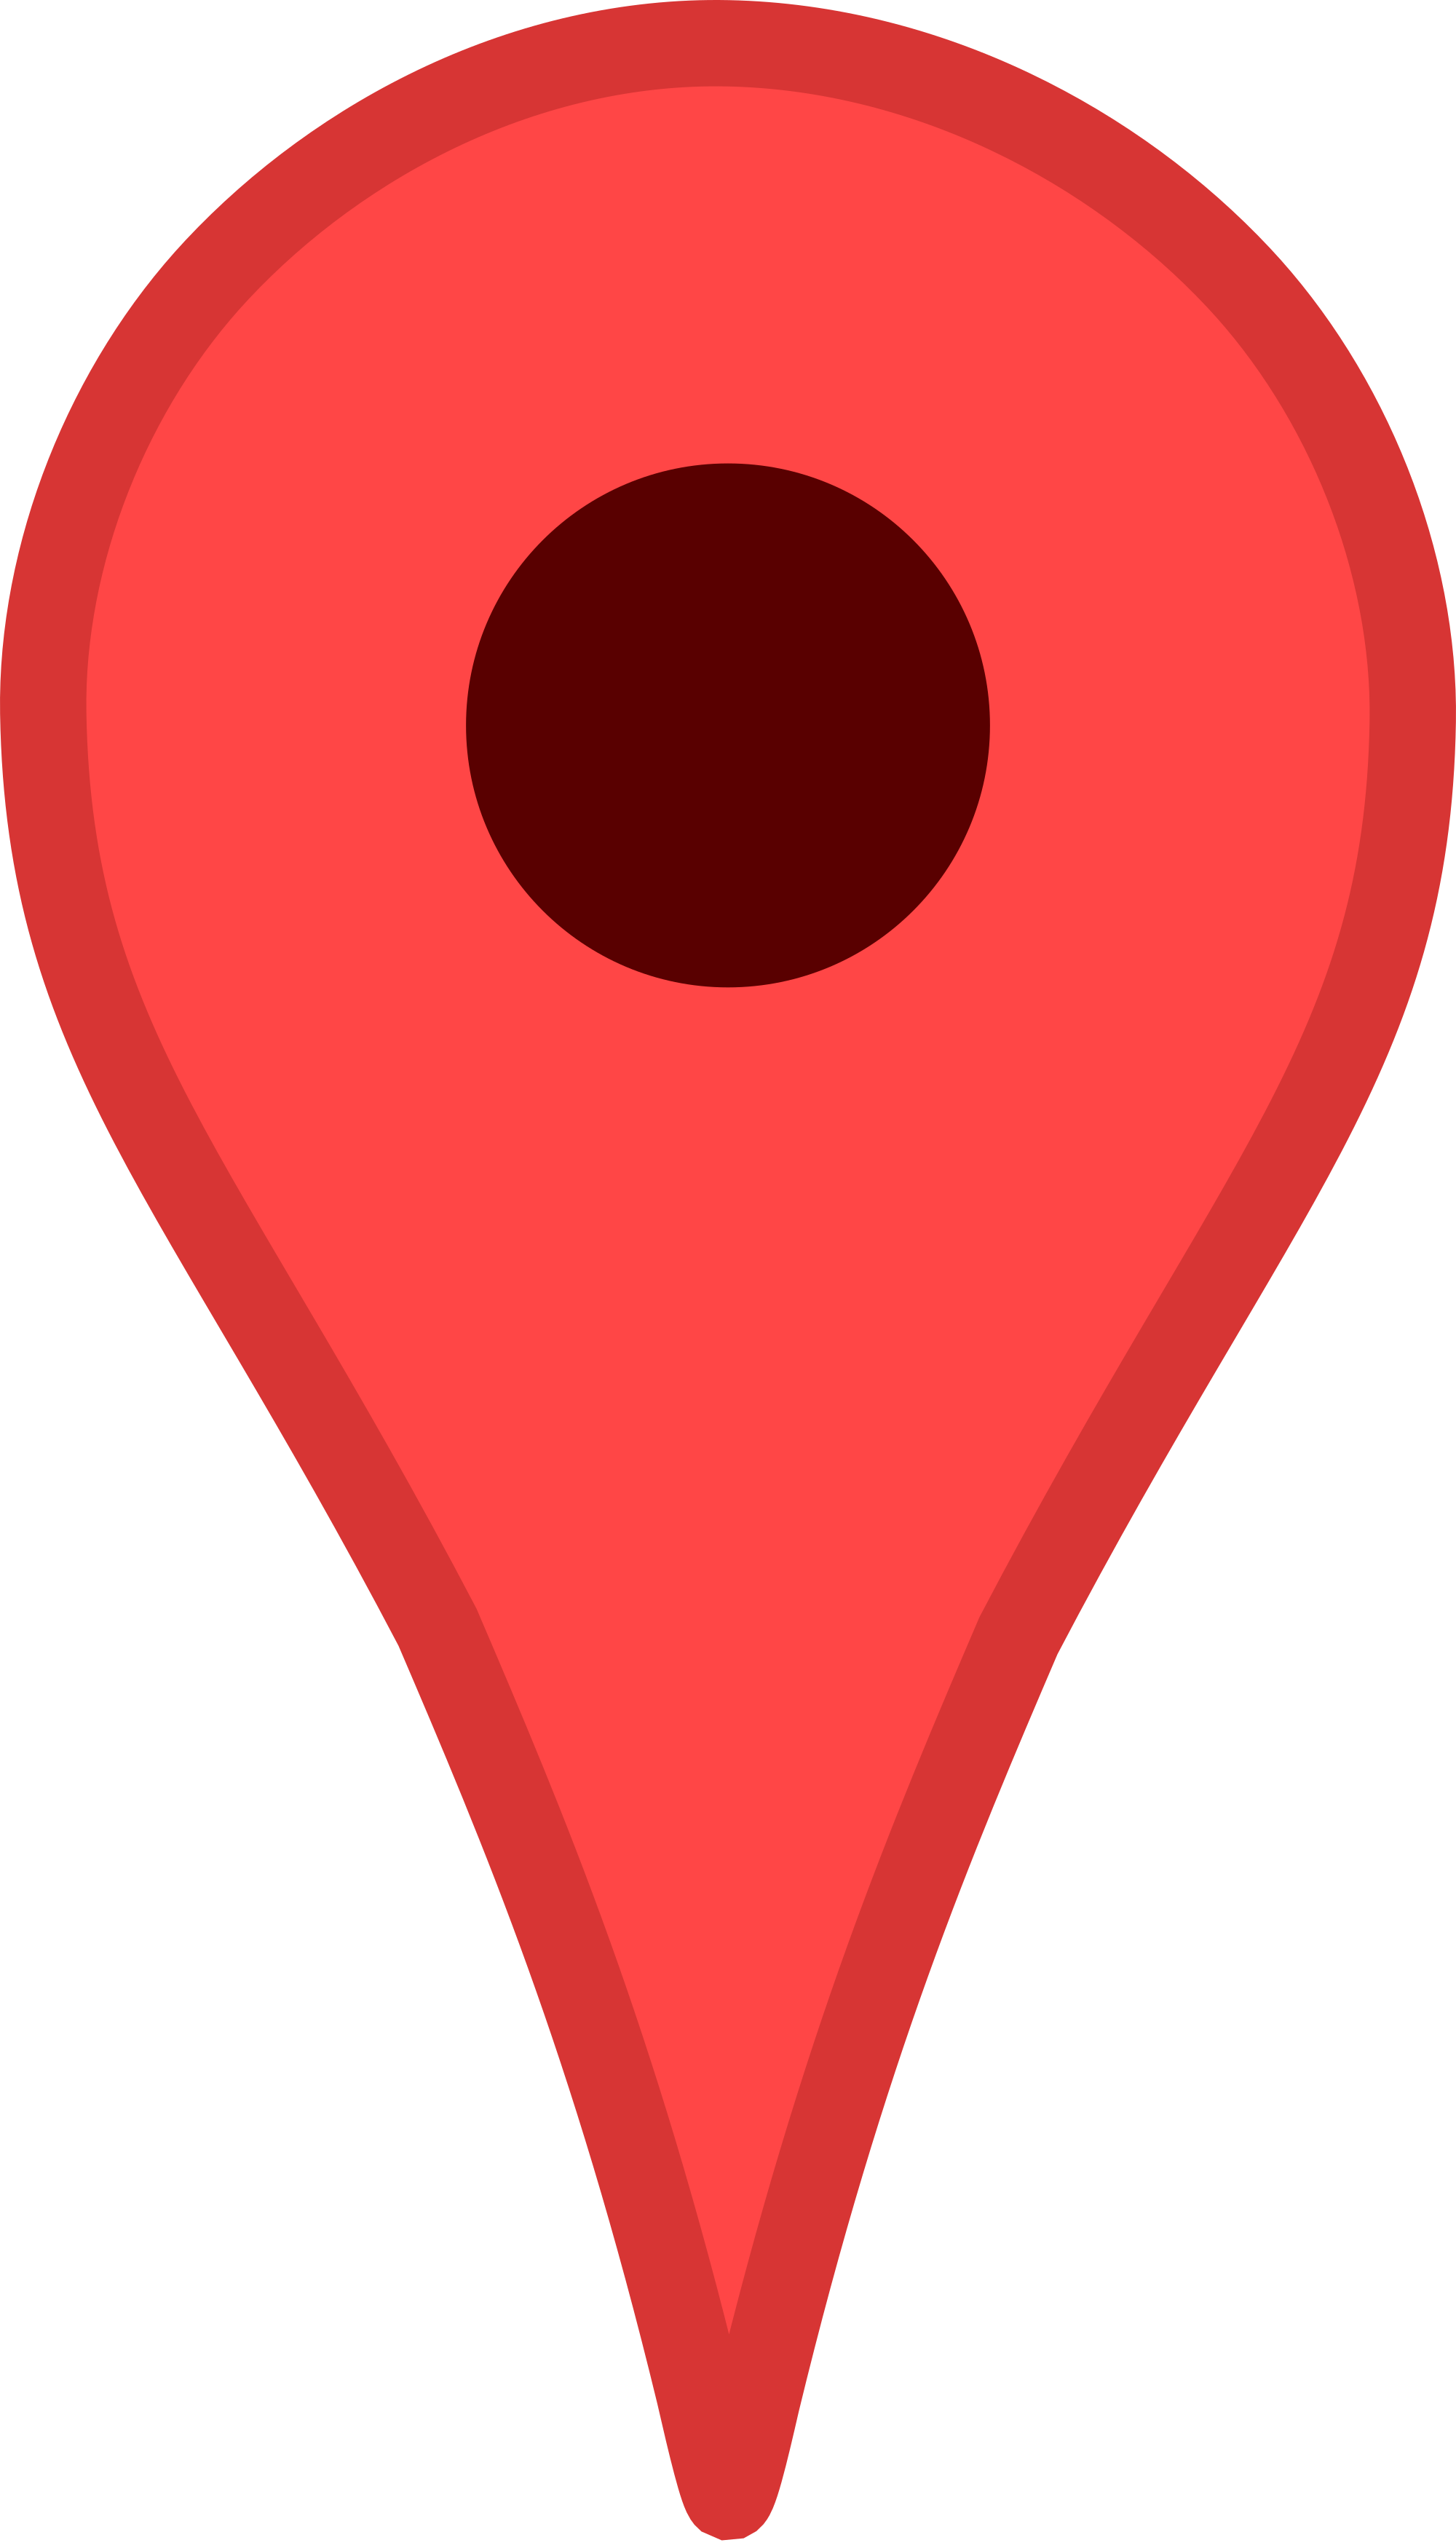 Pins clipart svg. File google maps pin